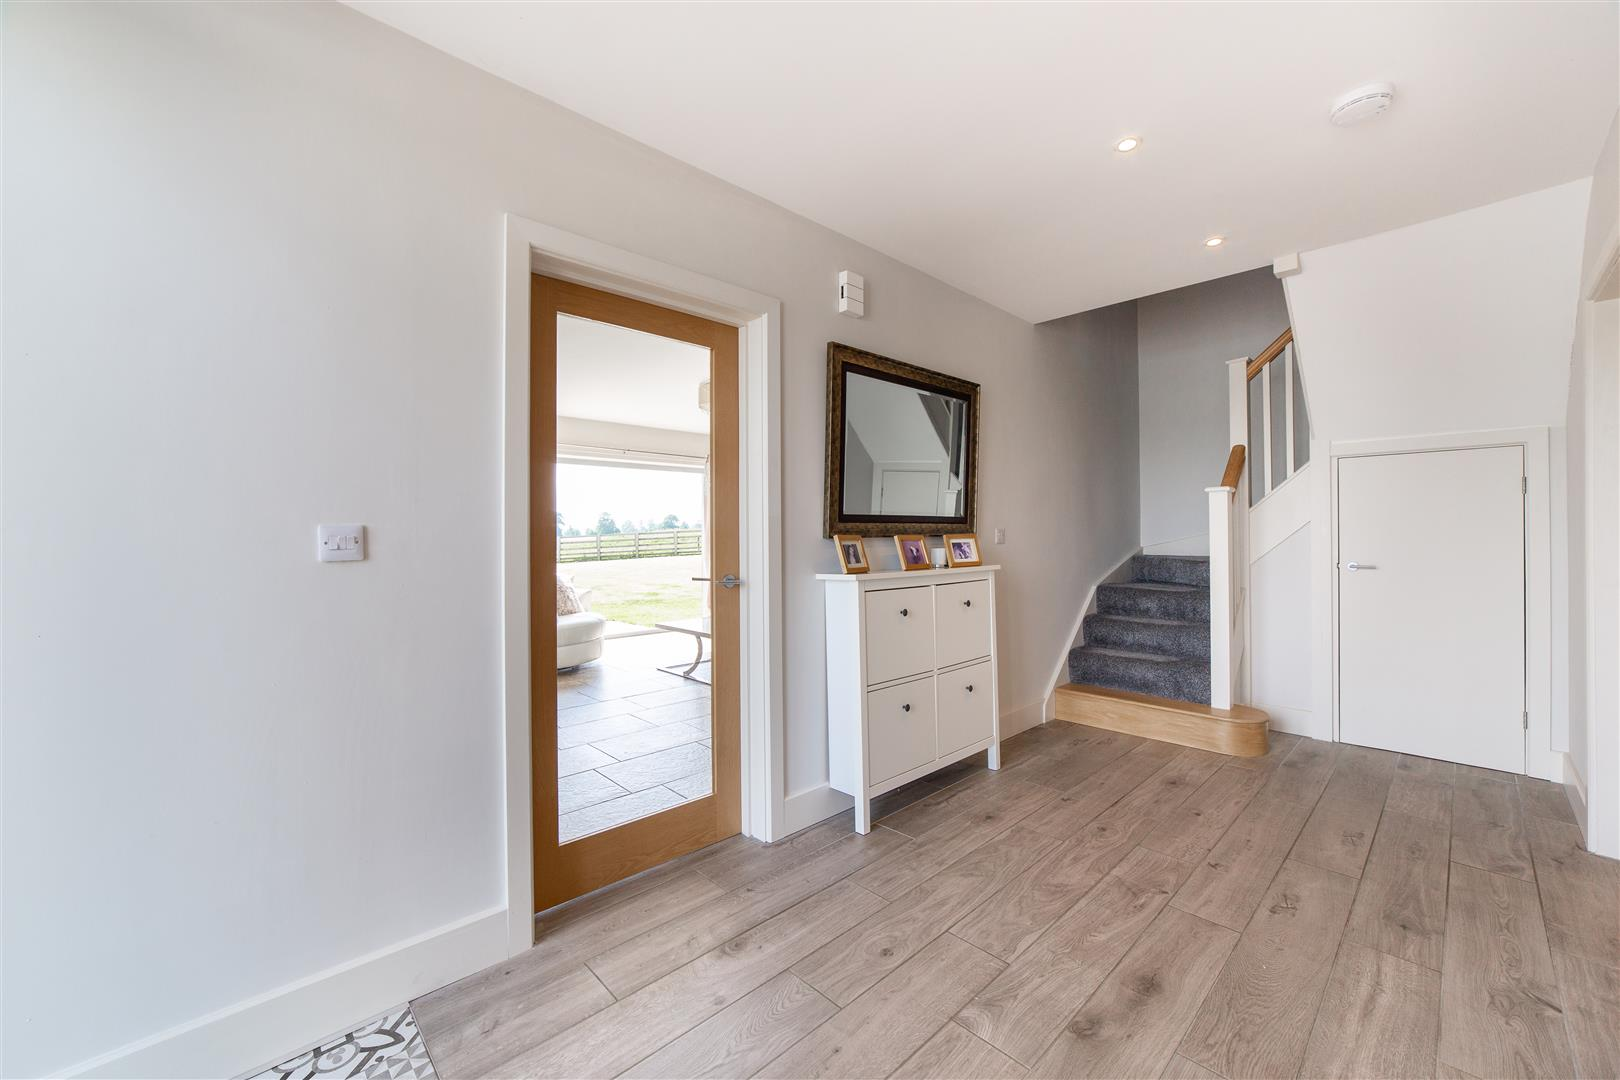 4 bed detached house for sale, Hexham 25